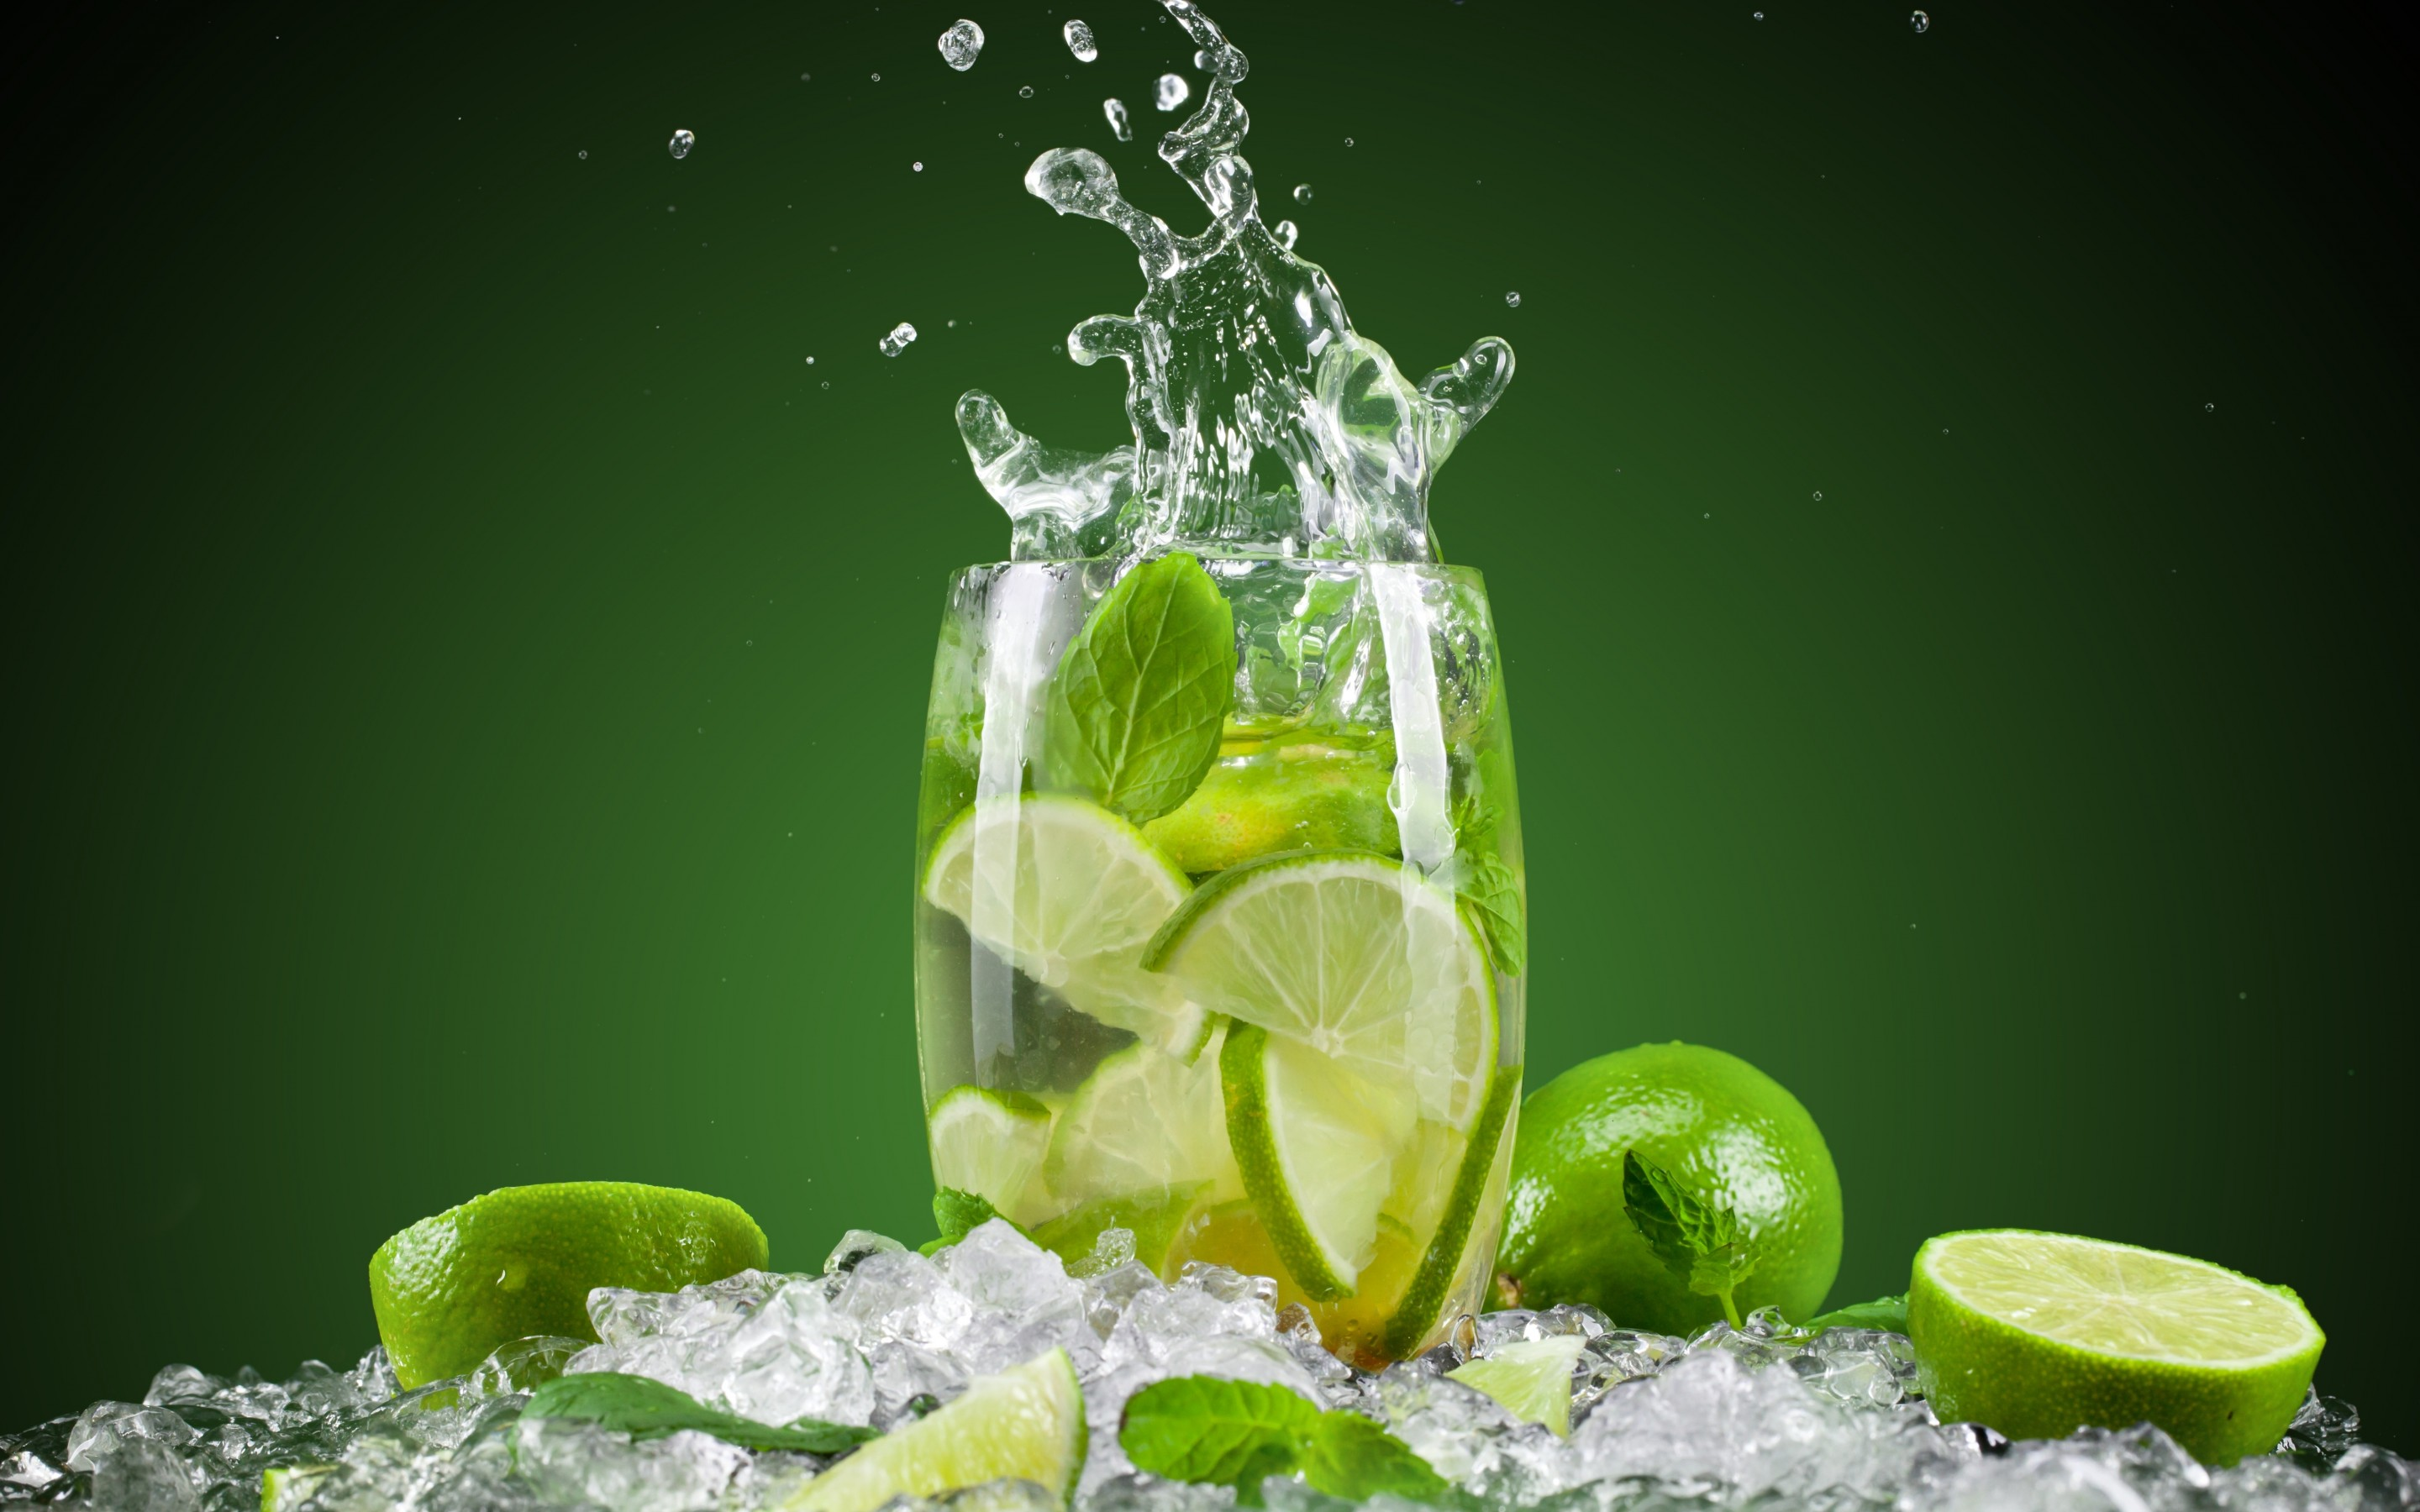 Caipirinha cocktail wallpaper  Cocktail Wallpaper and Hintergrund | 1600x1200 | ID:209277